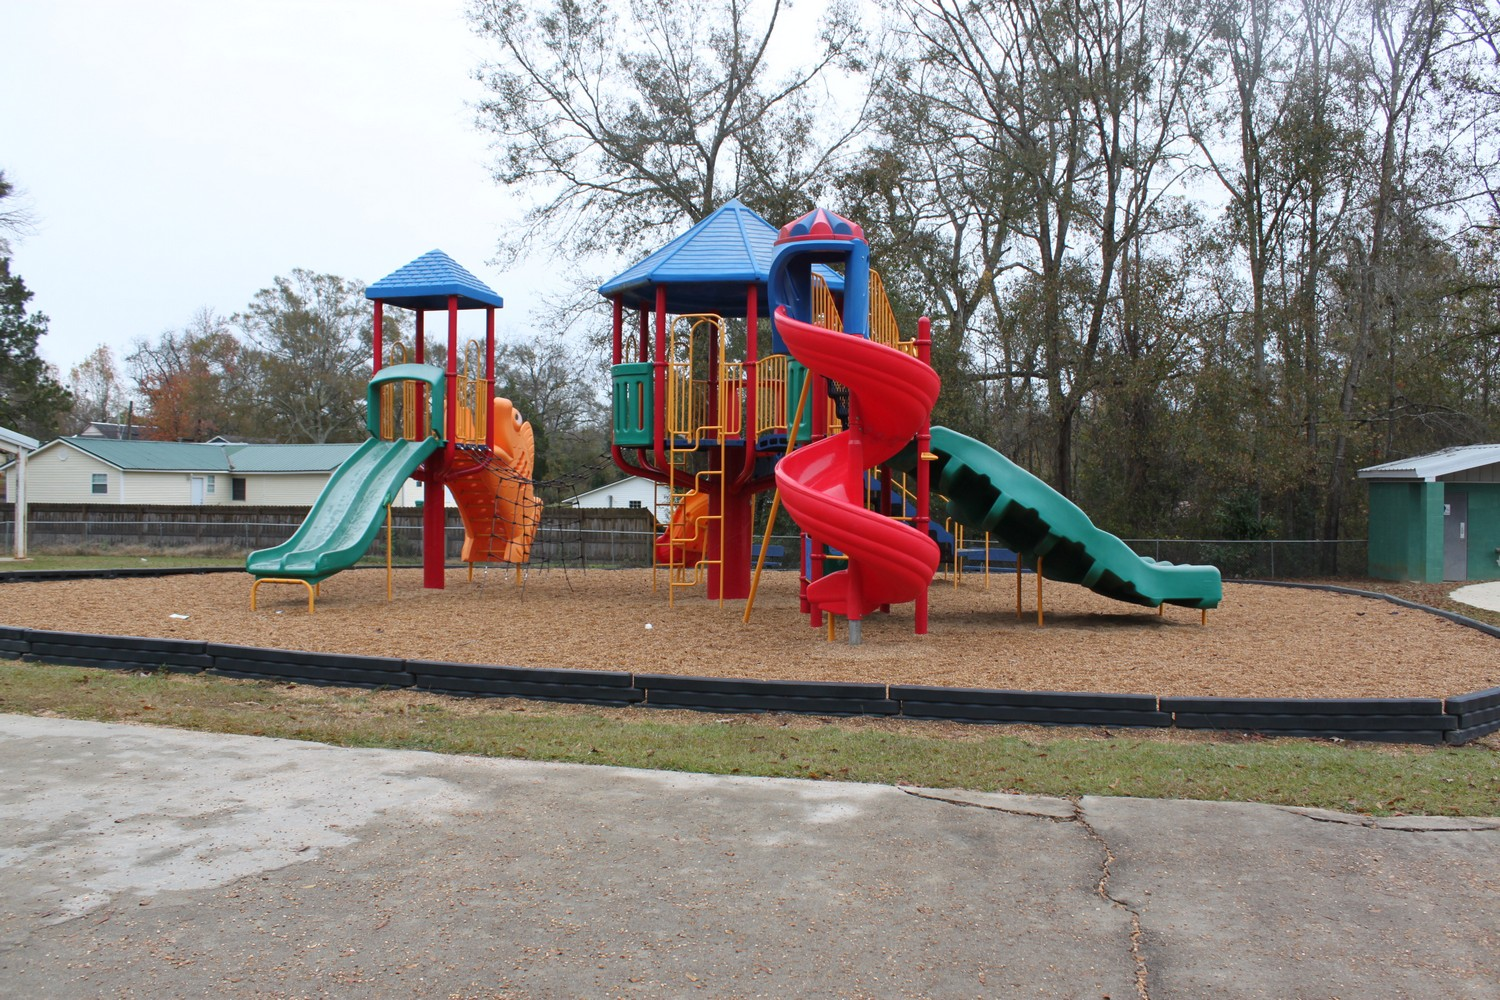 Bethel Playground and Spray Park